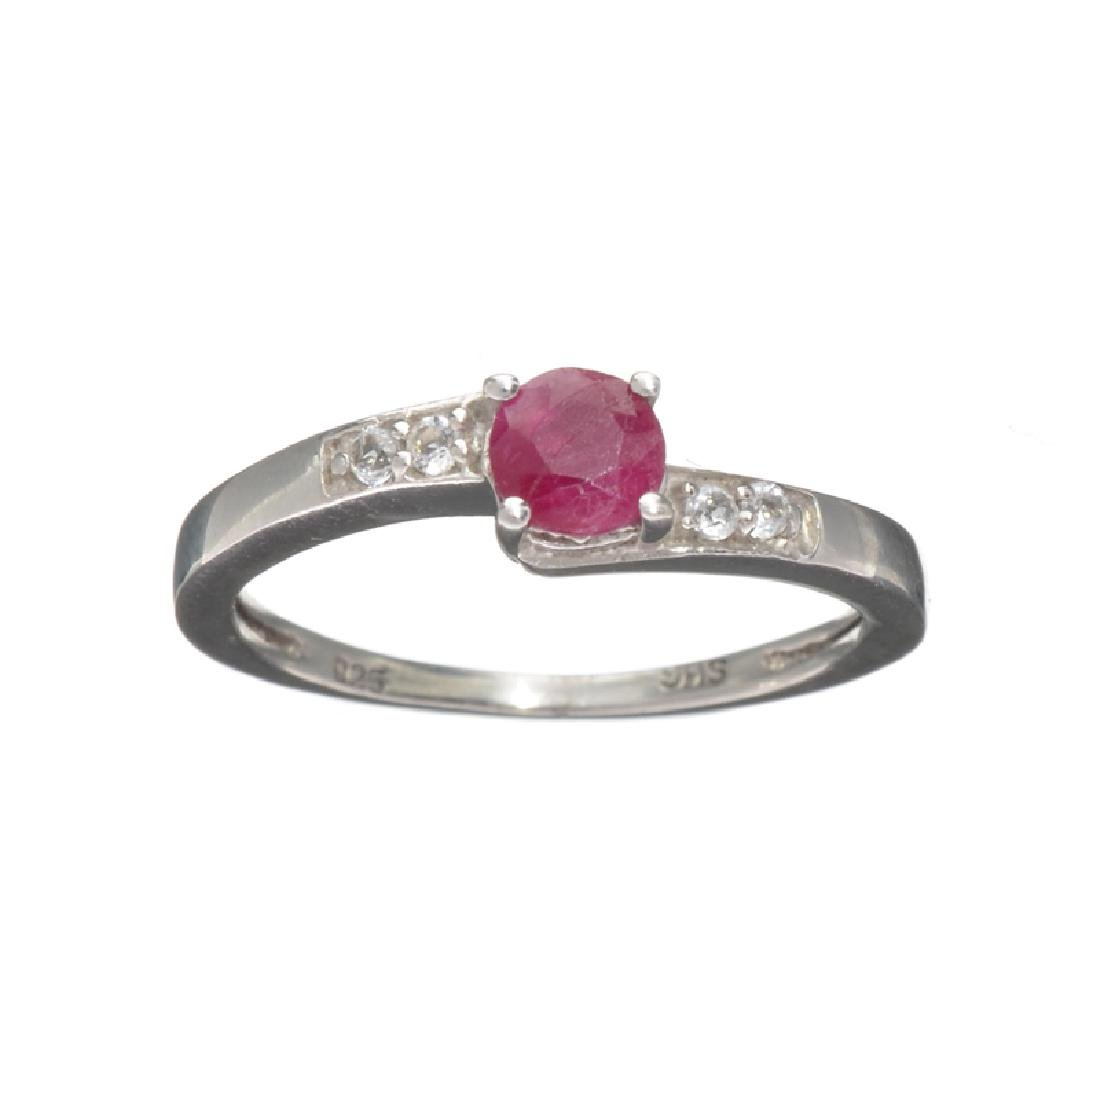 APP: 0.7k Fine Jewelry 0.50CT Round Cut Ruby And